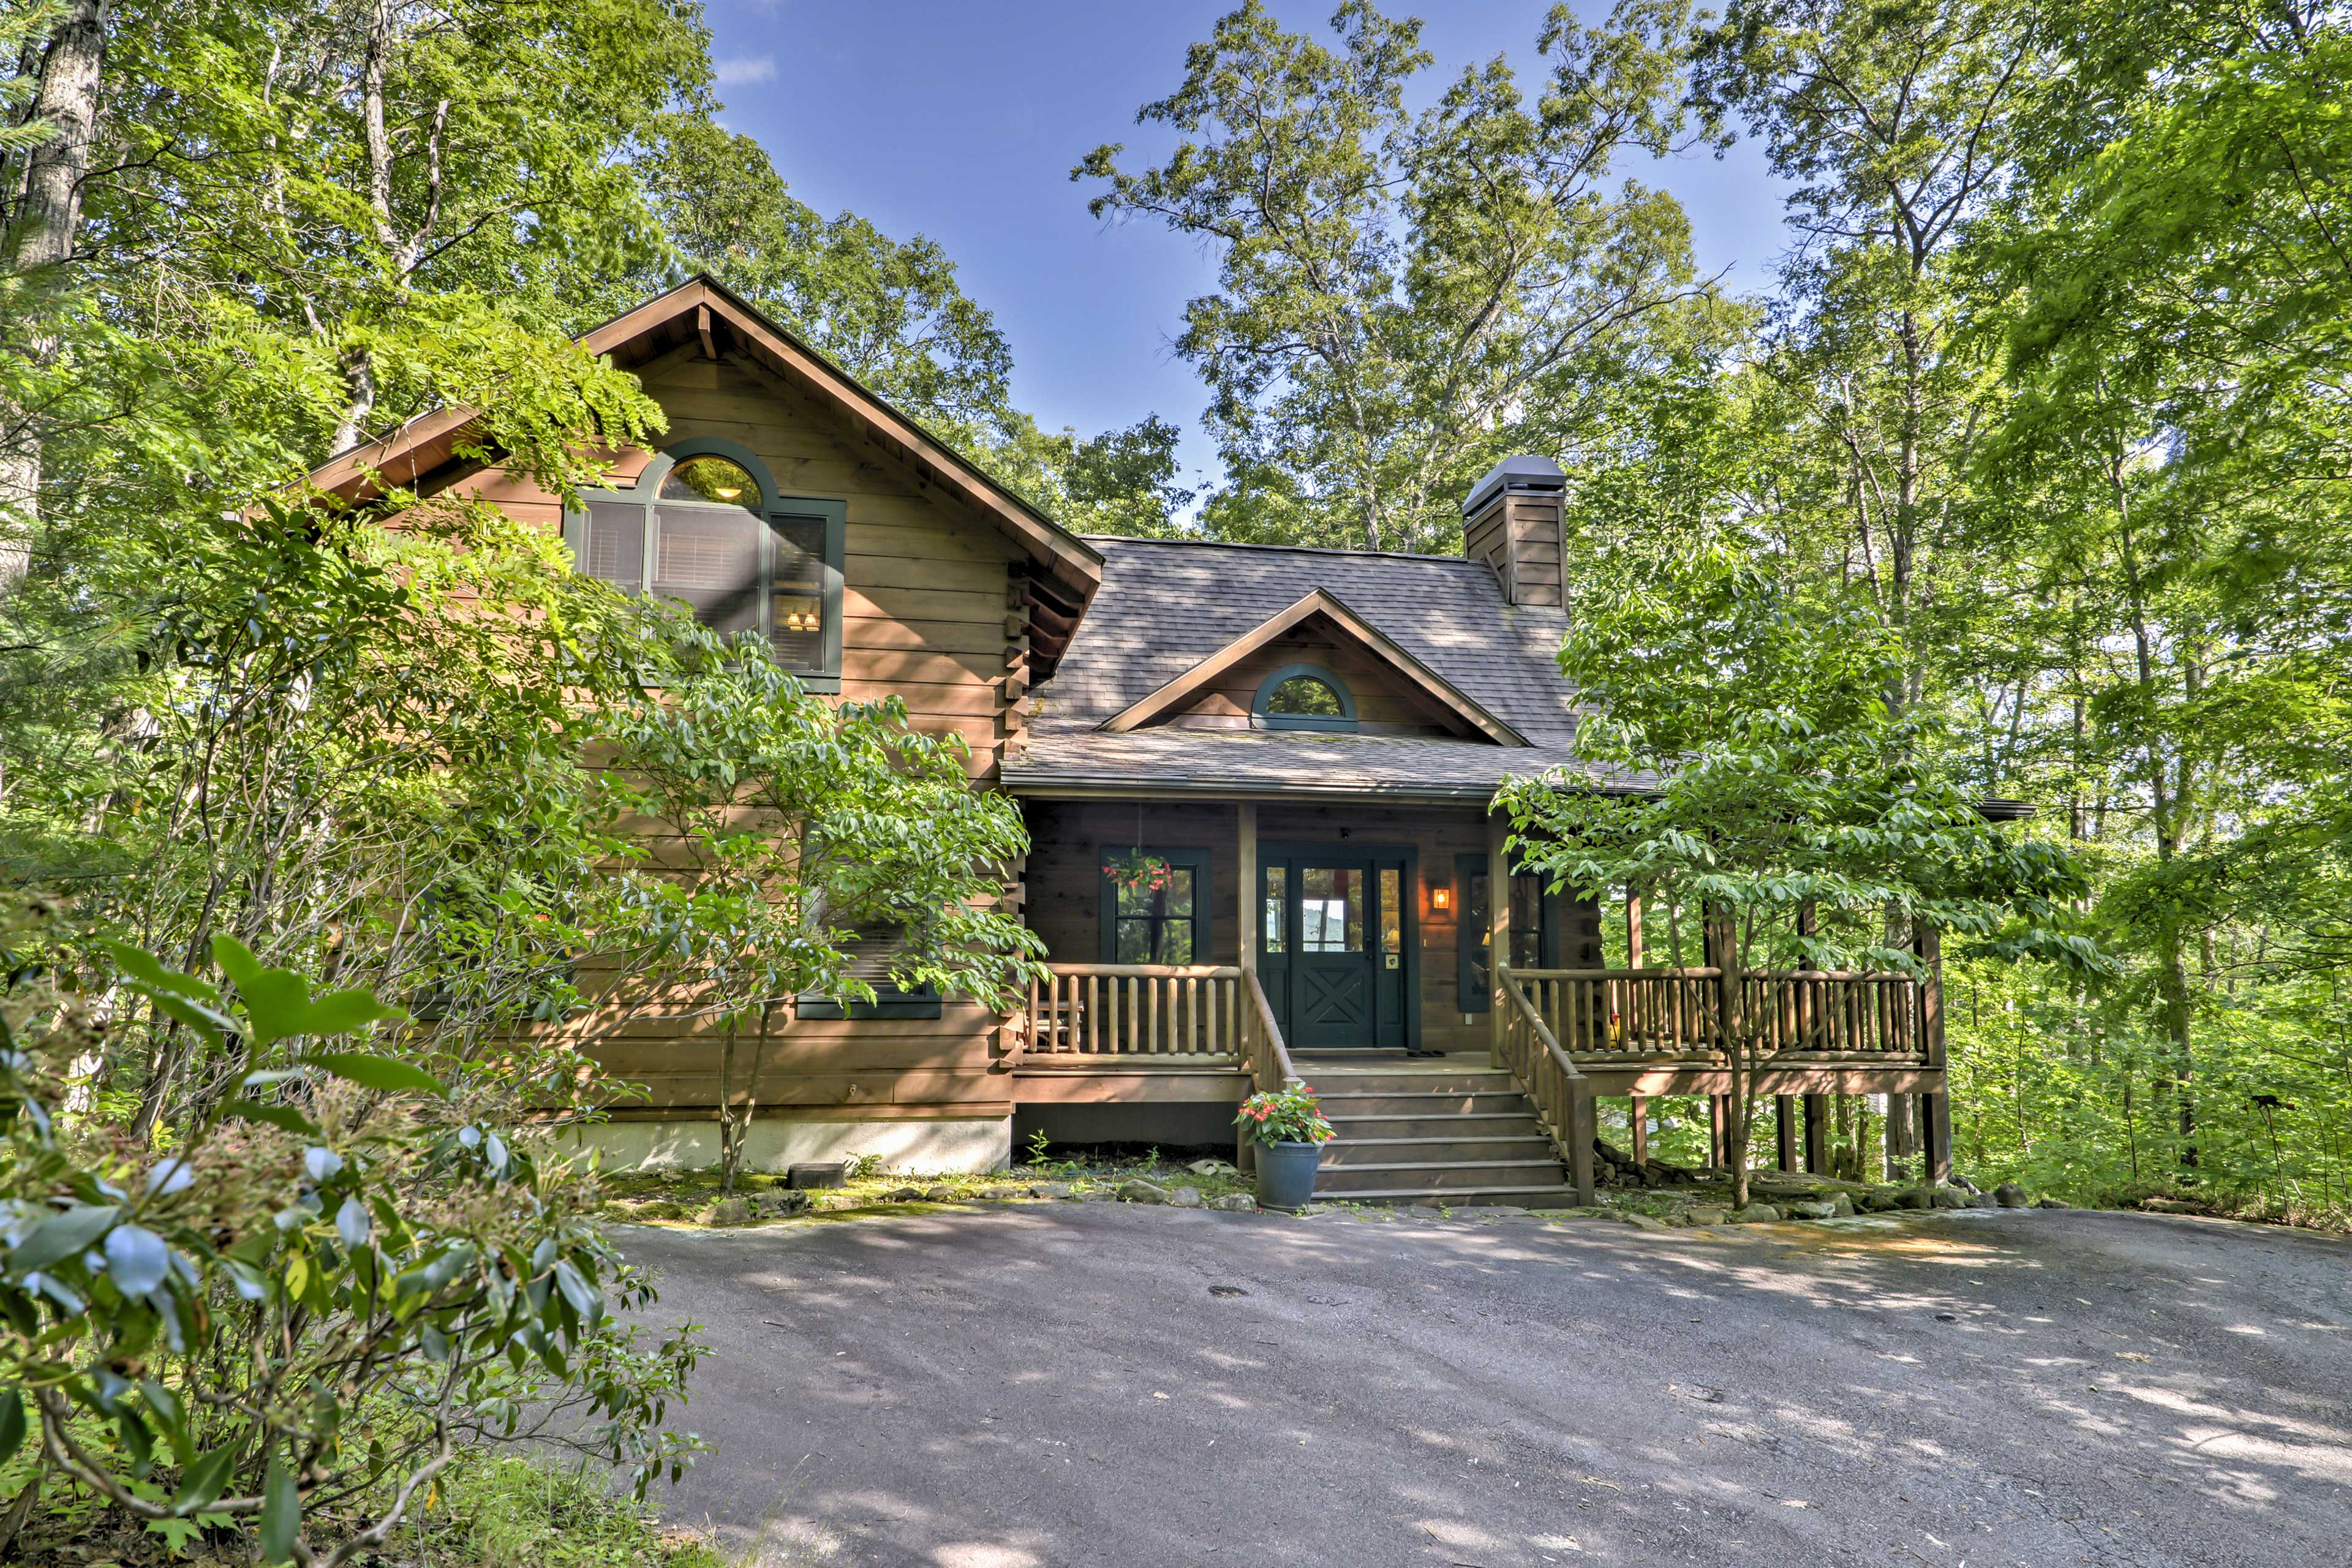 Summertime Exterior | Private Entrance | Remote Location